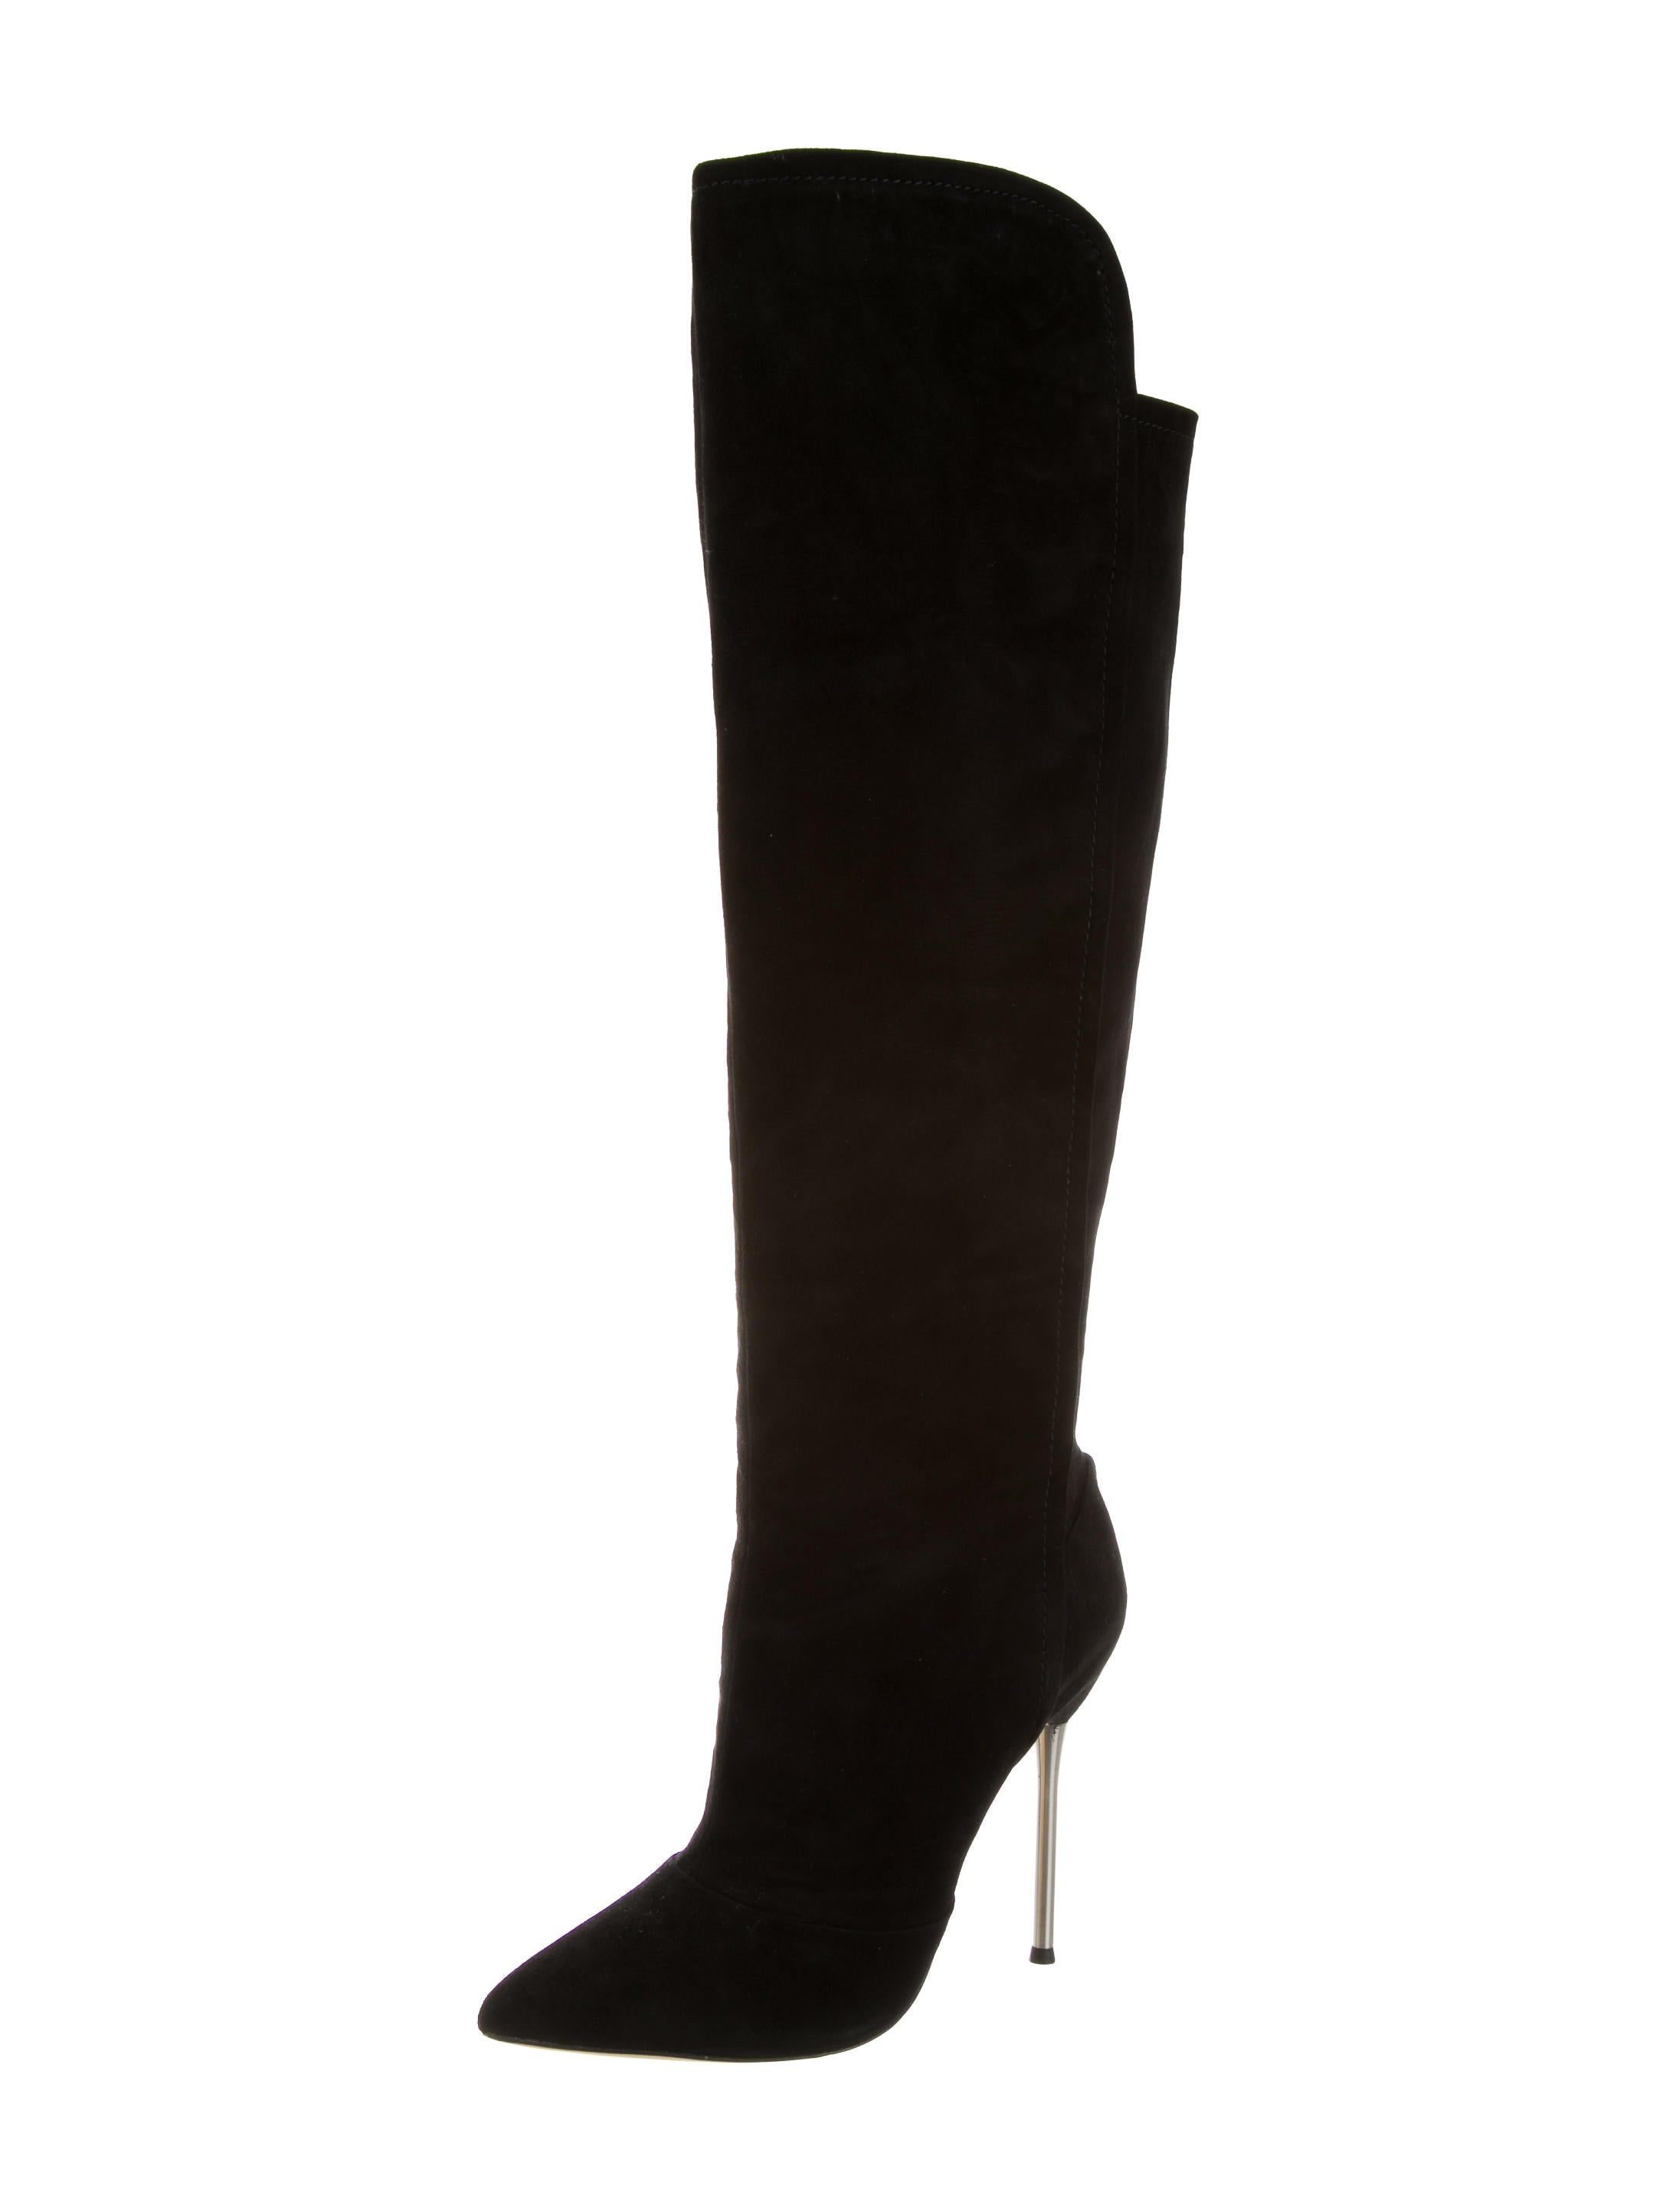 b brian atwood suede pointed toe boots w tags shoes